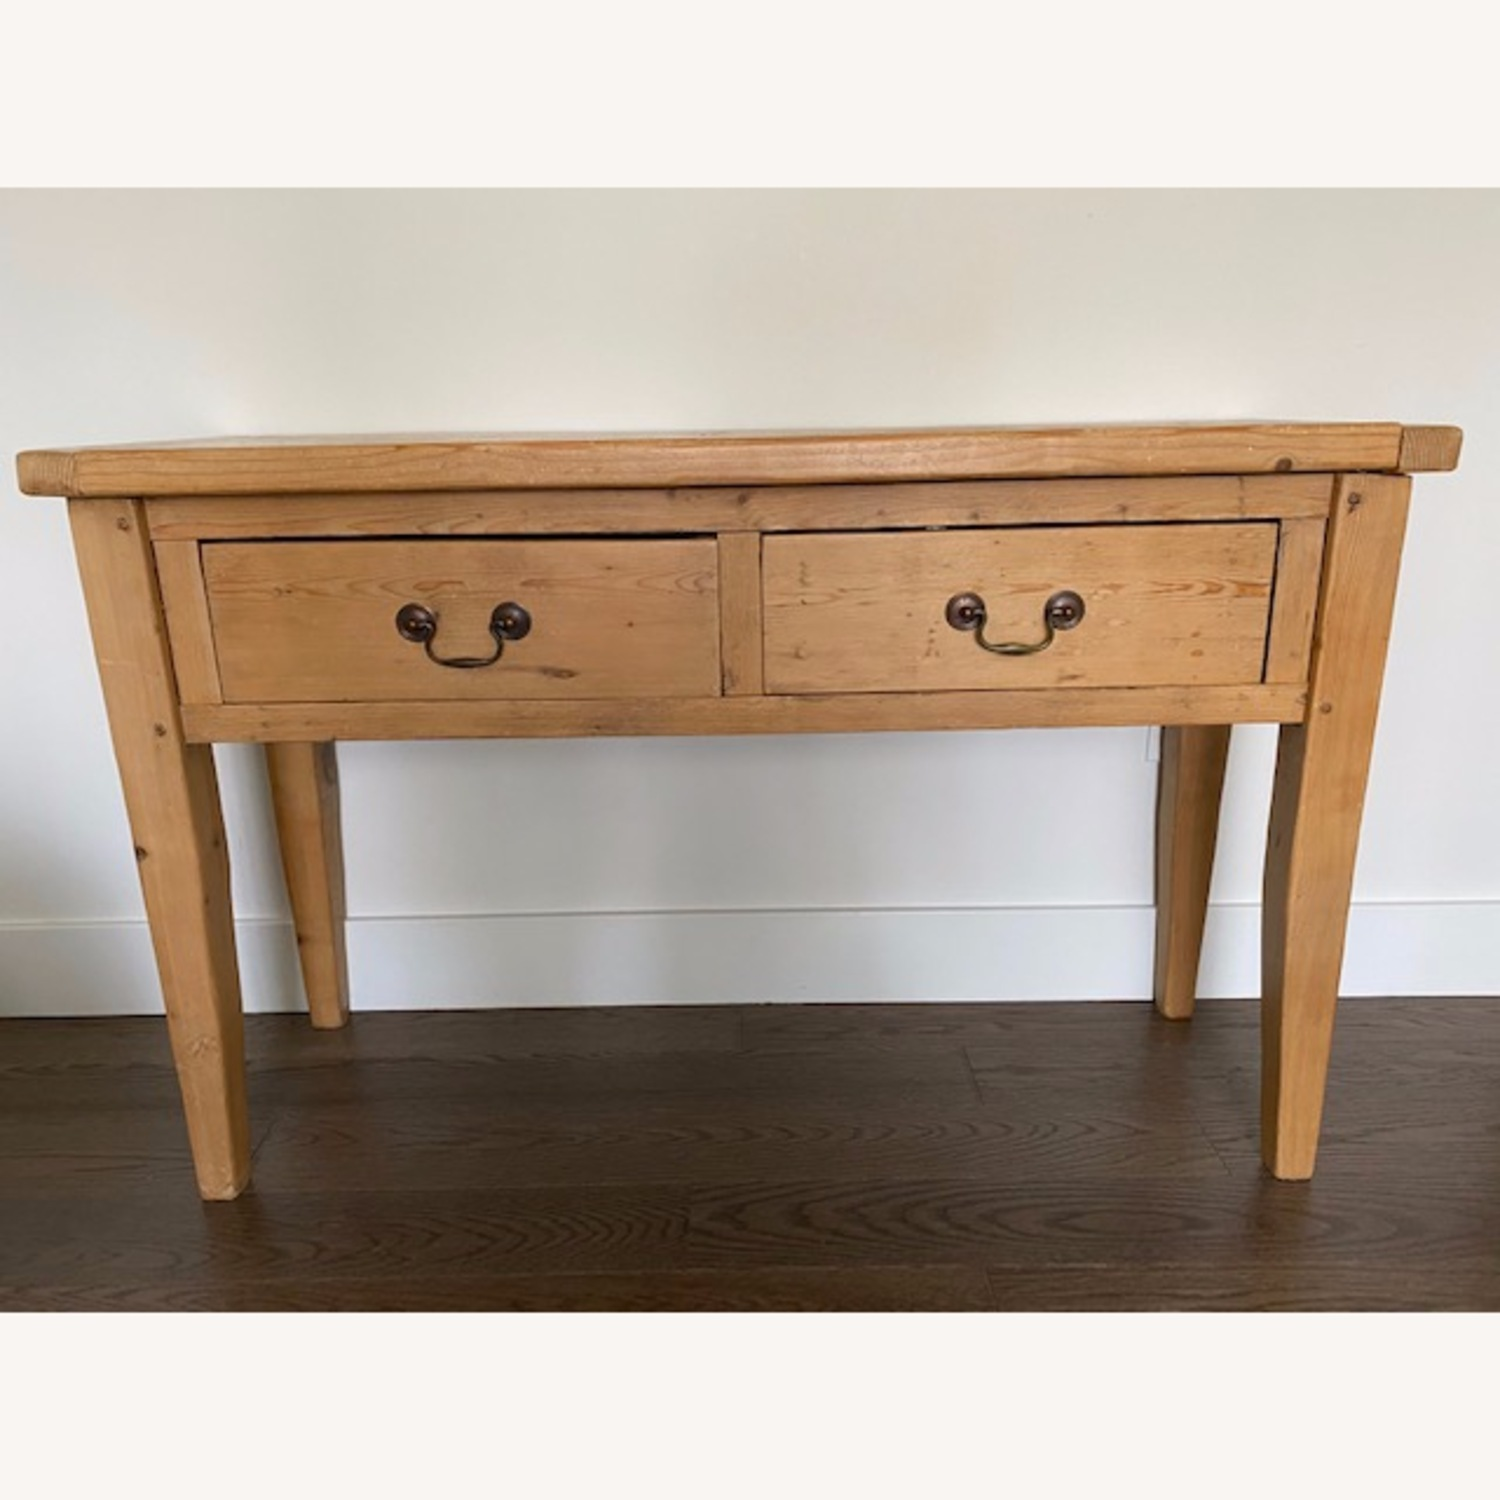 Vintage Pine Console Table with Drawers - image-1